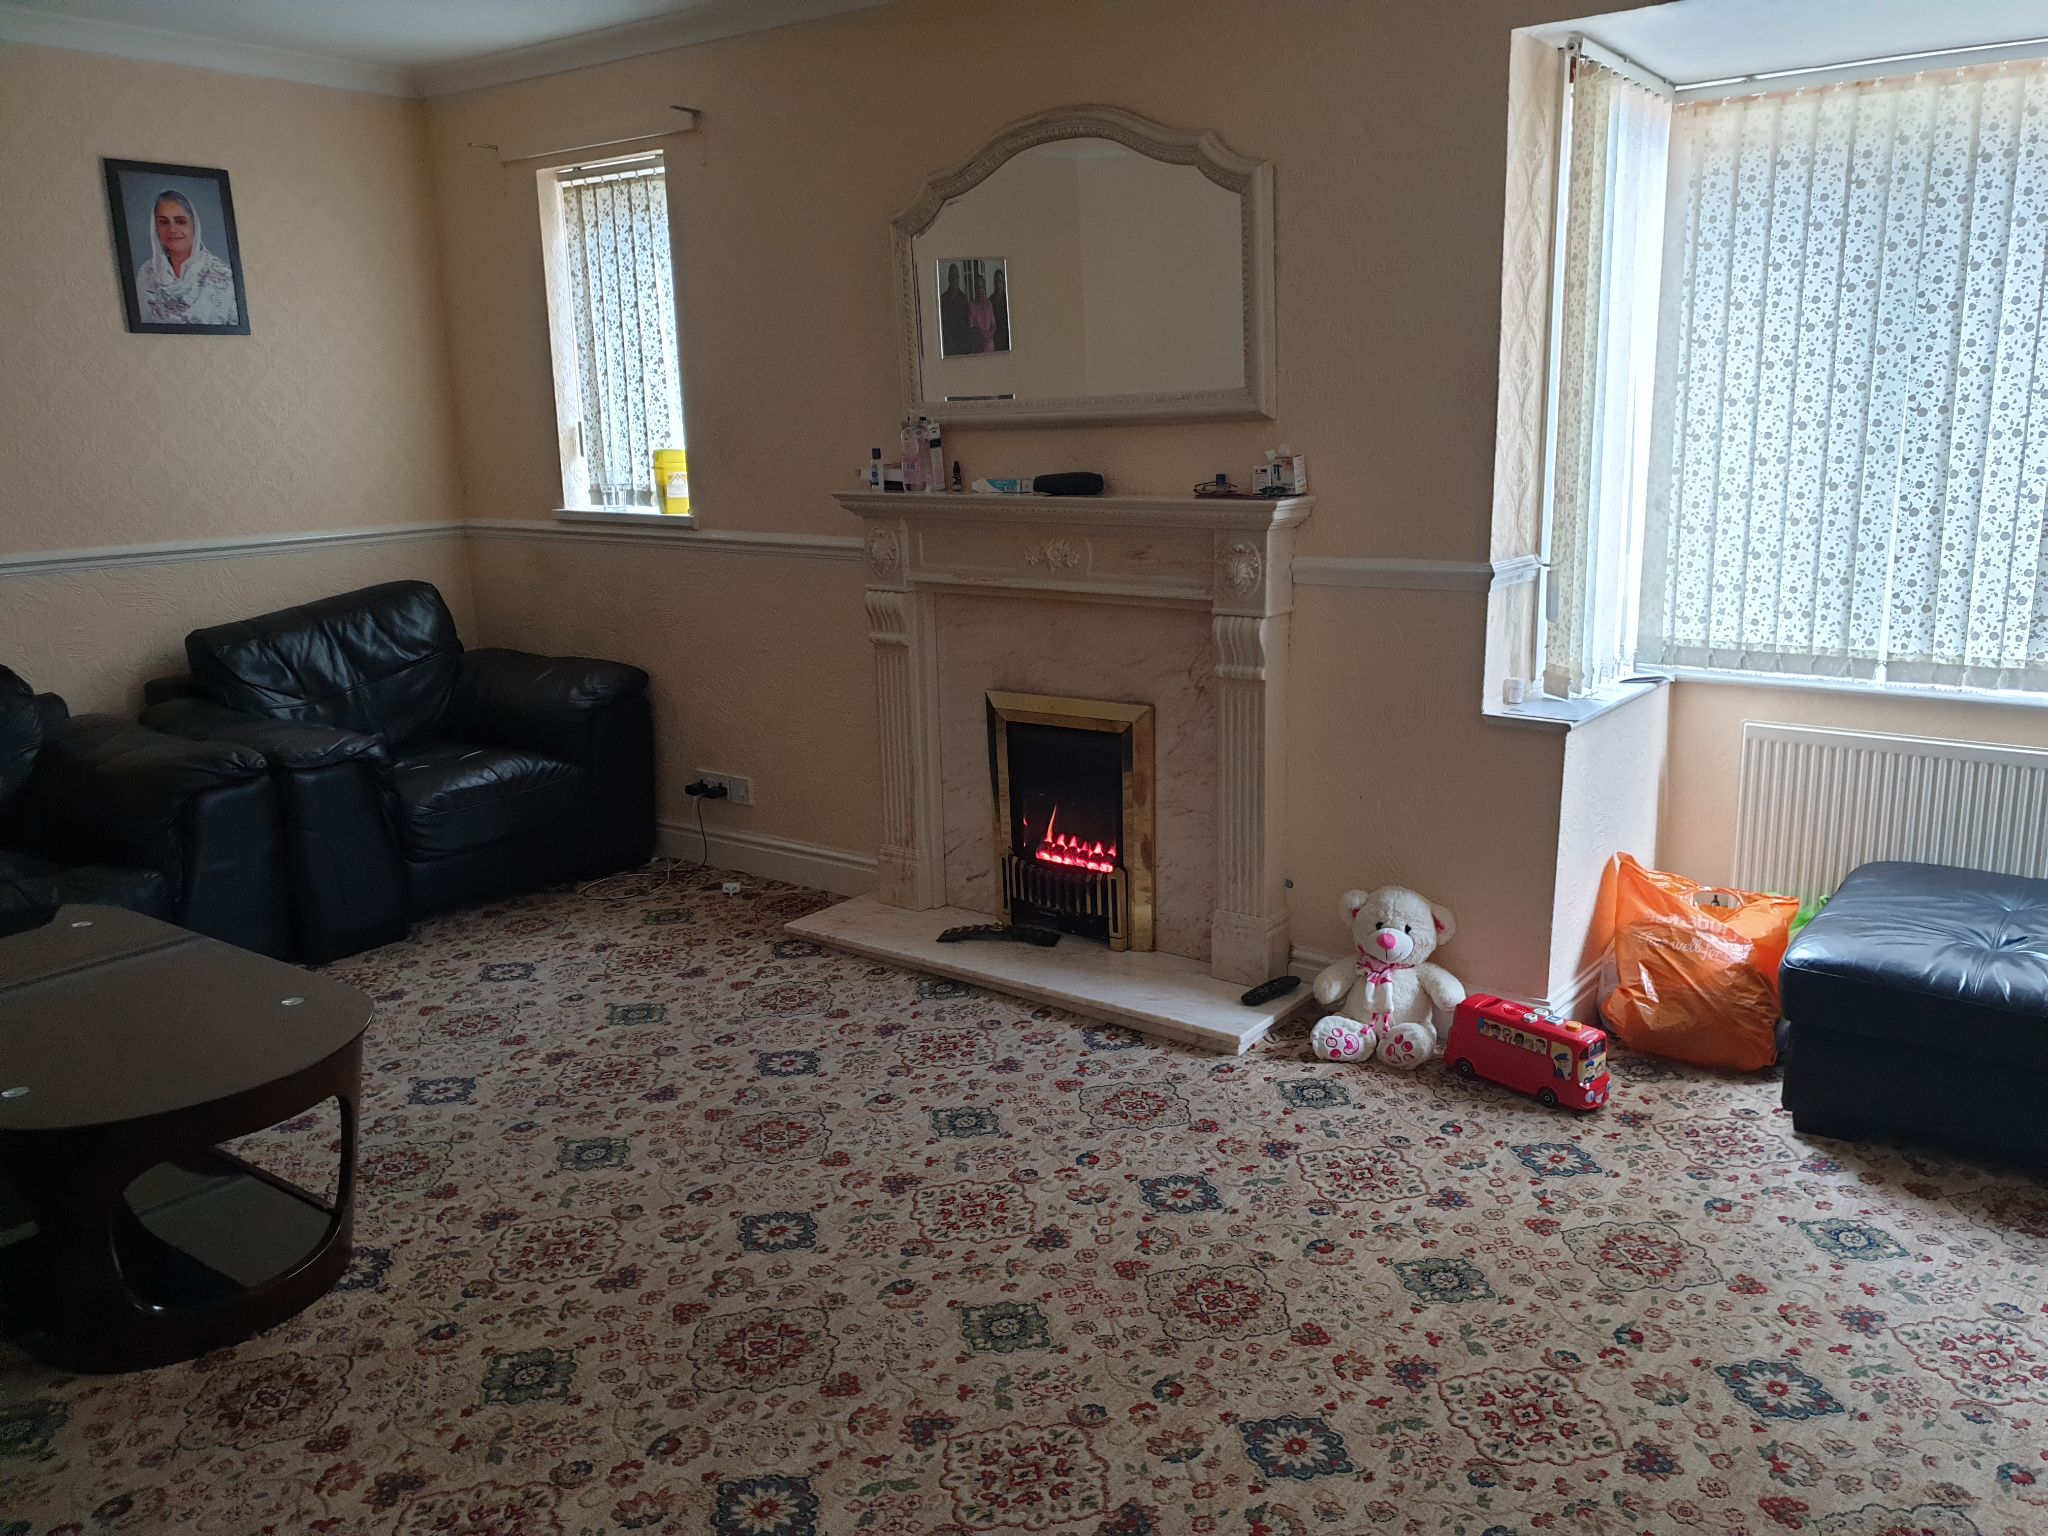 4 bedroom detached house For Sale in Leicester - Photograph 4.